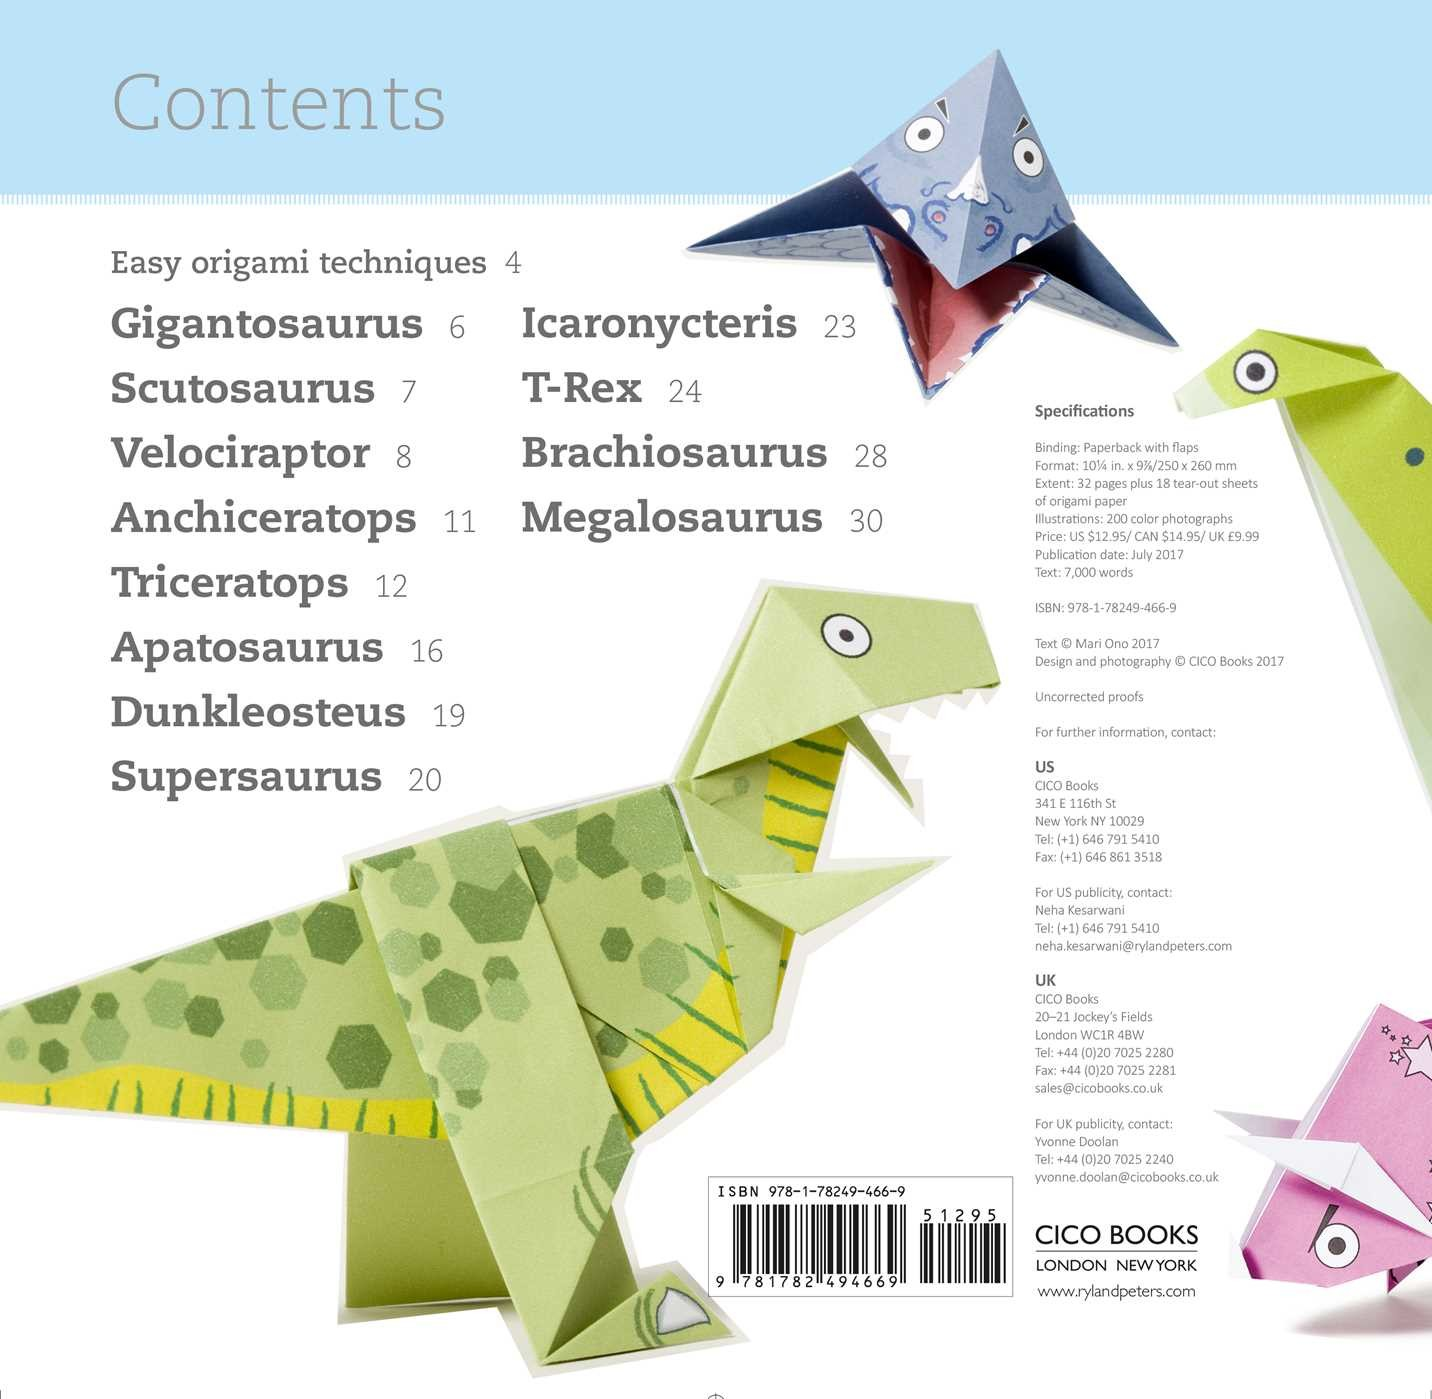 Easy Origami For Kids Dino 9781782494669in01